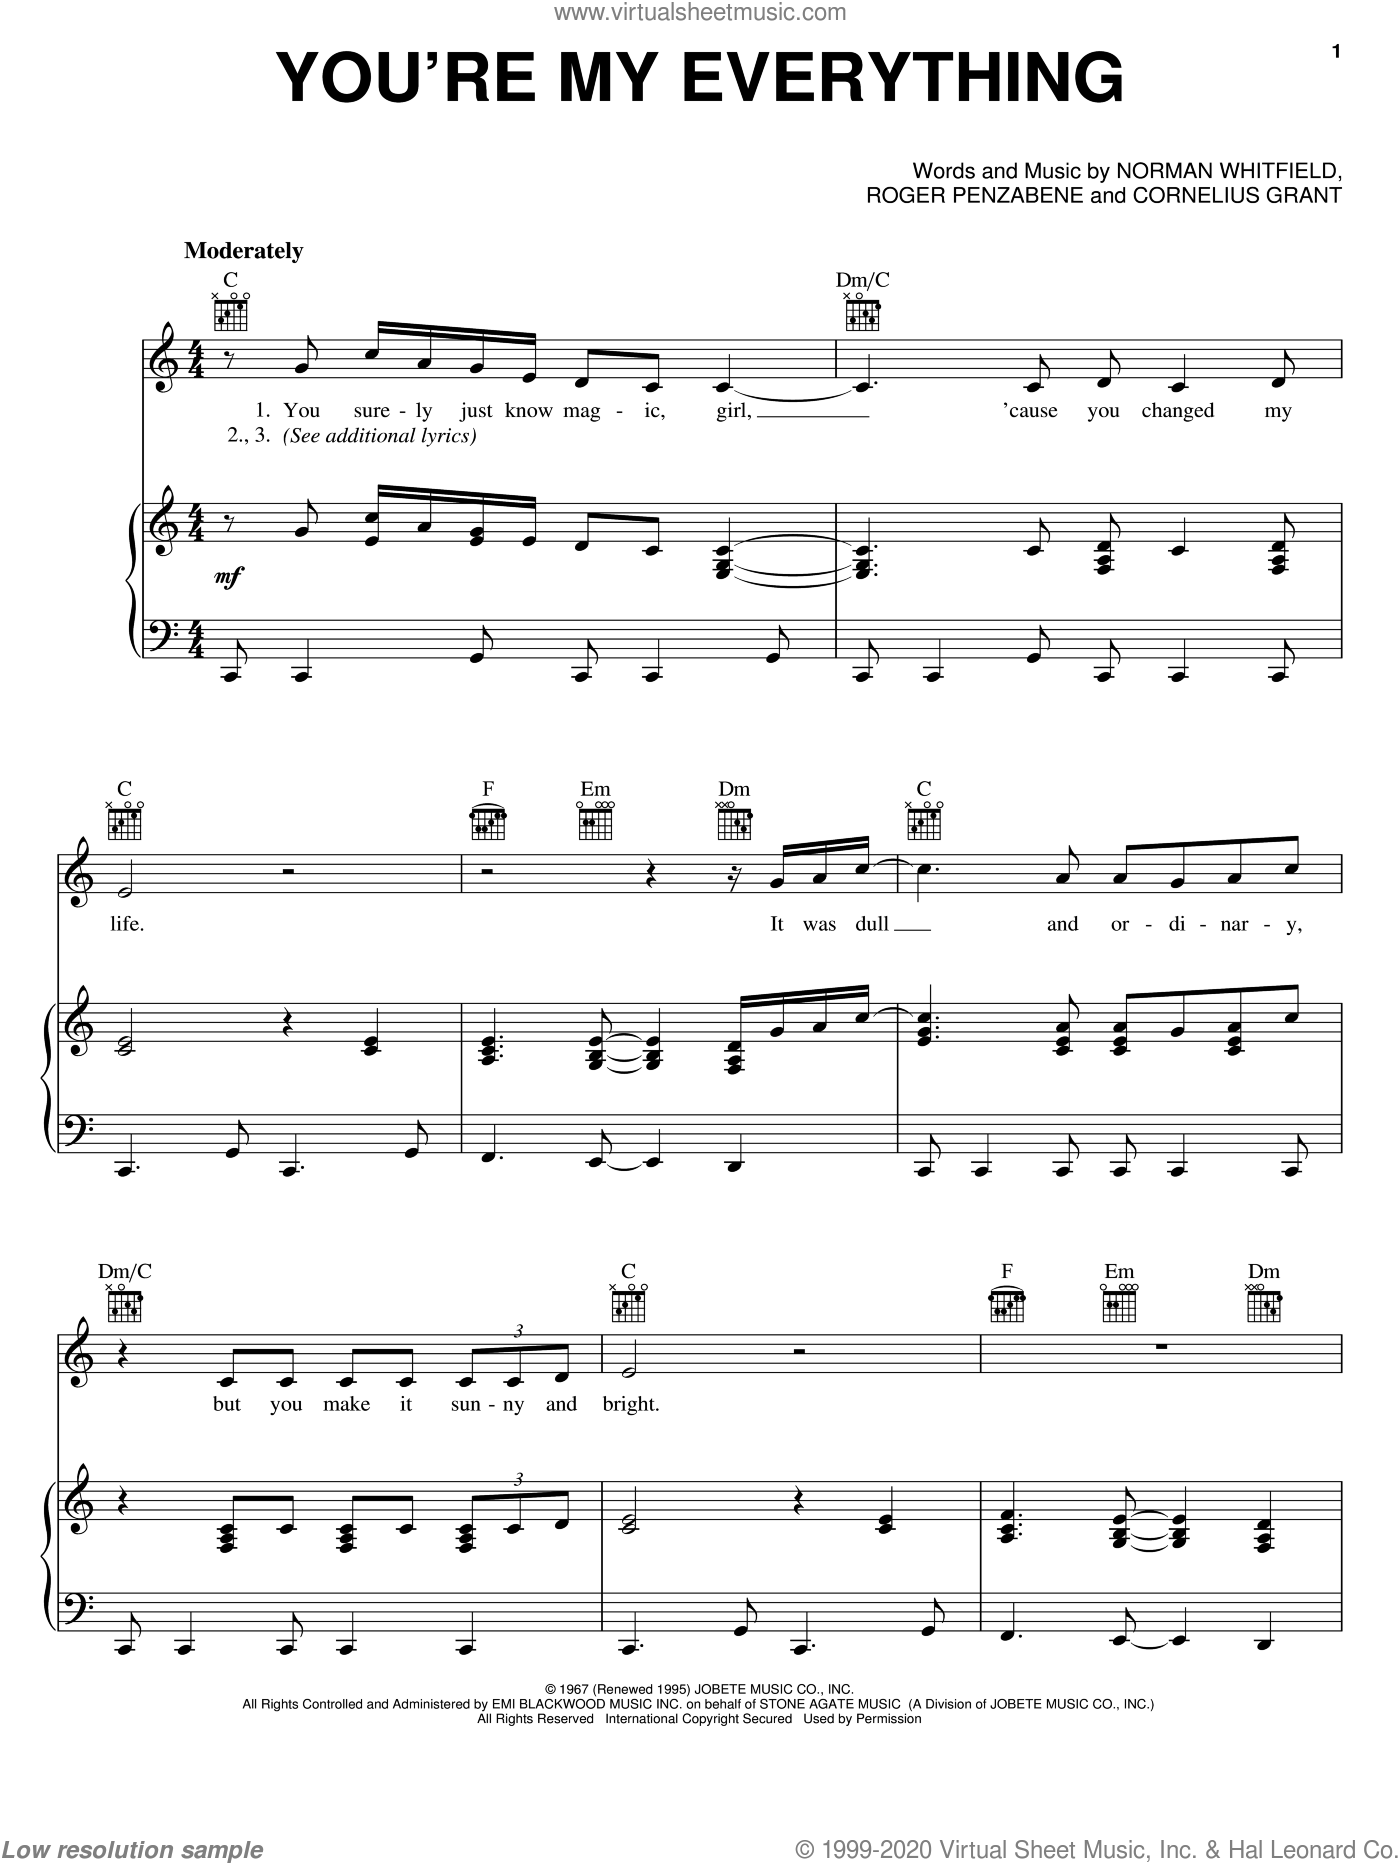 You're My Everything sheet music for voice, piano or guitar by Roger Penzabene